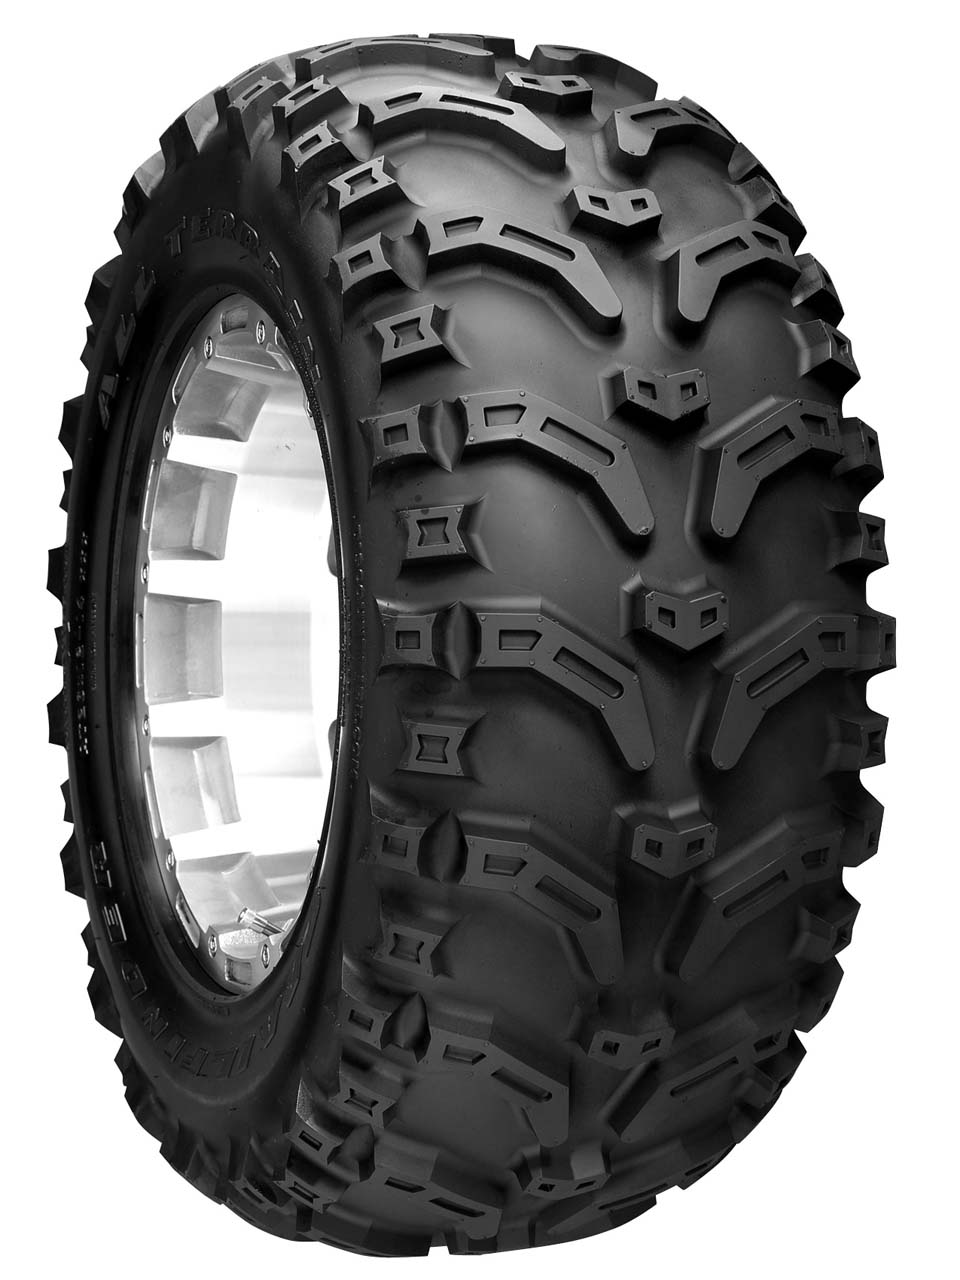 Trailfinder Atv Tire From Discount Tire Direct Atv Illustrated